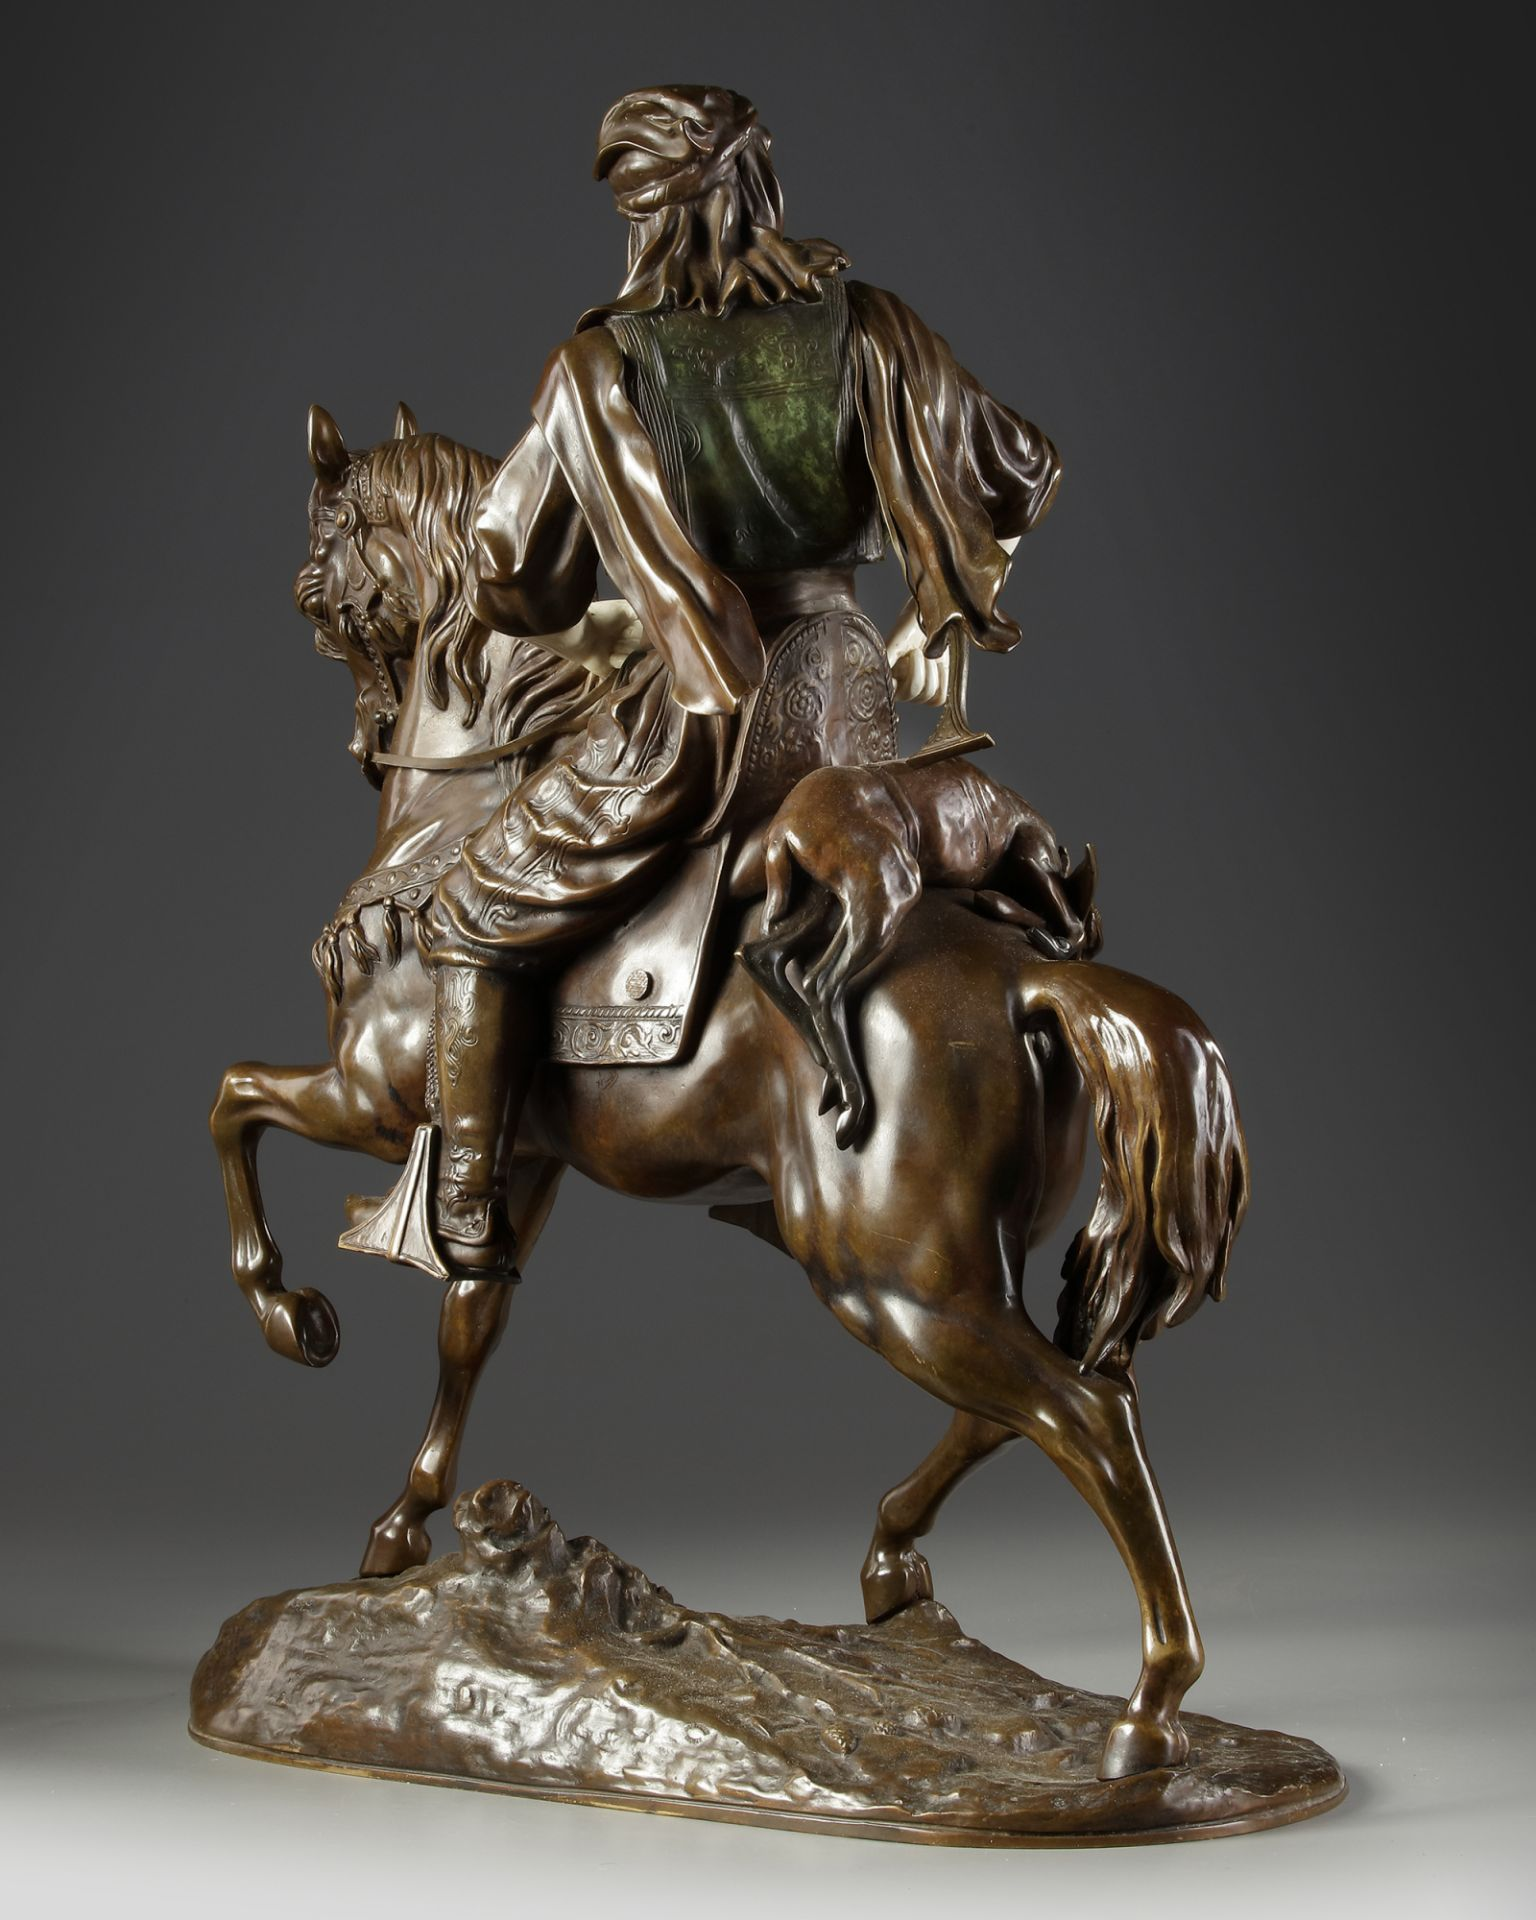 A SUPERB BRONZE SCULPTURE BY ALFRED BARYE AND EMILE GUILLEMIN, 19TH CENTURY - Image 4 of 7